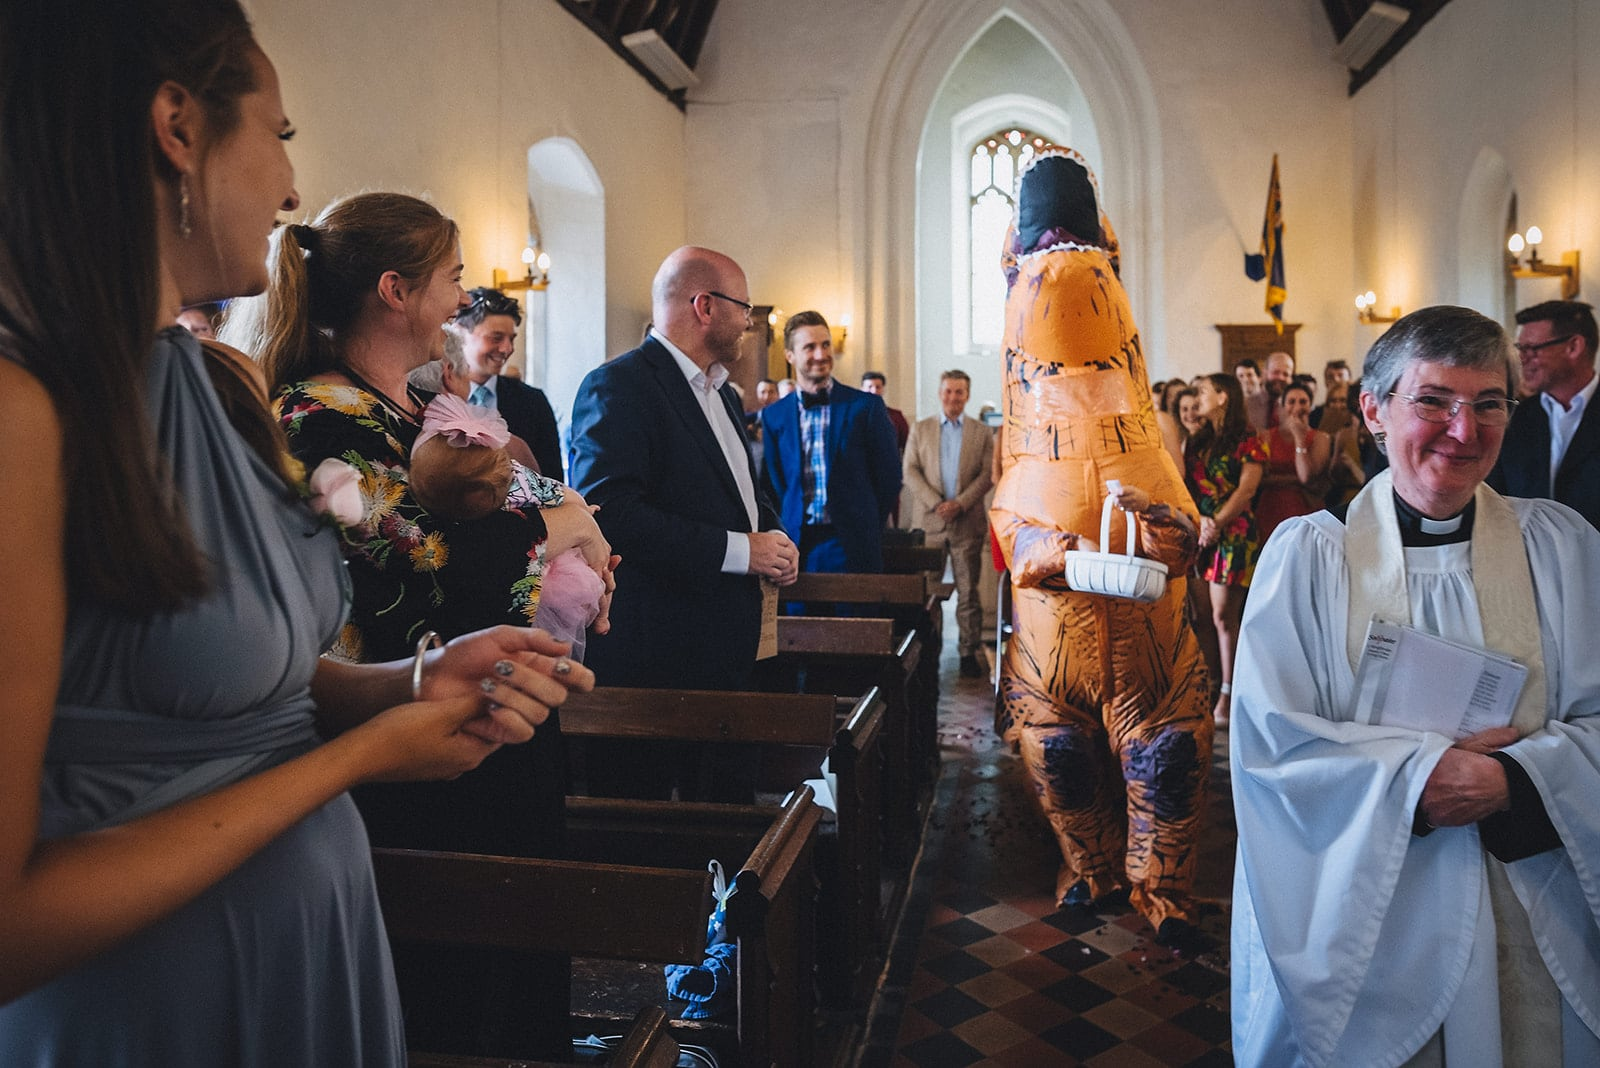 Dinosaur flower girl walking down the aisle after the vicar